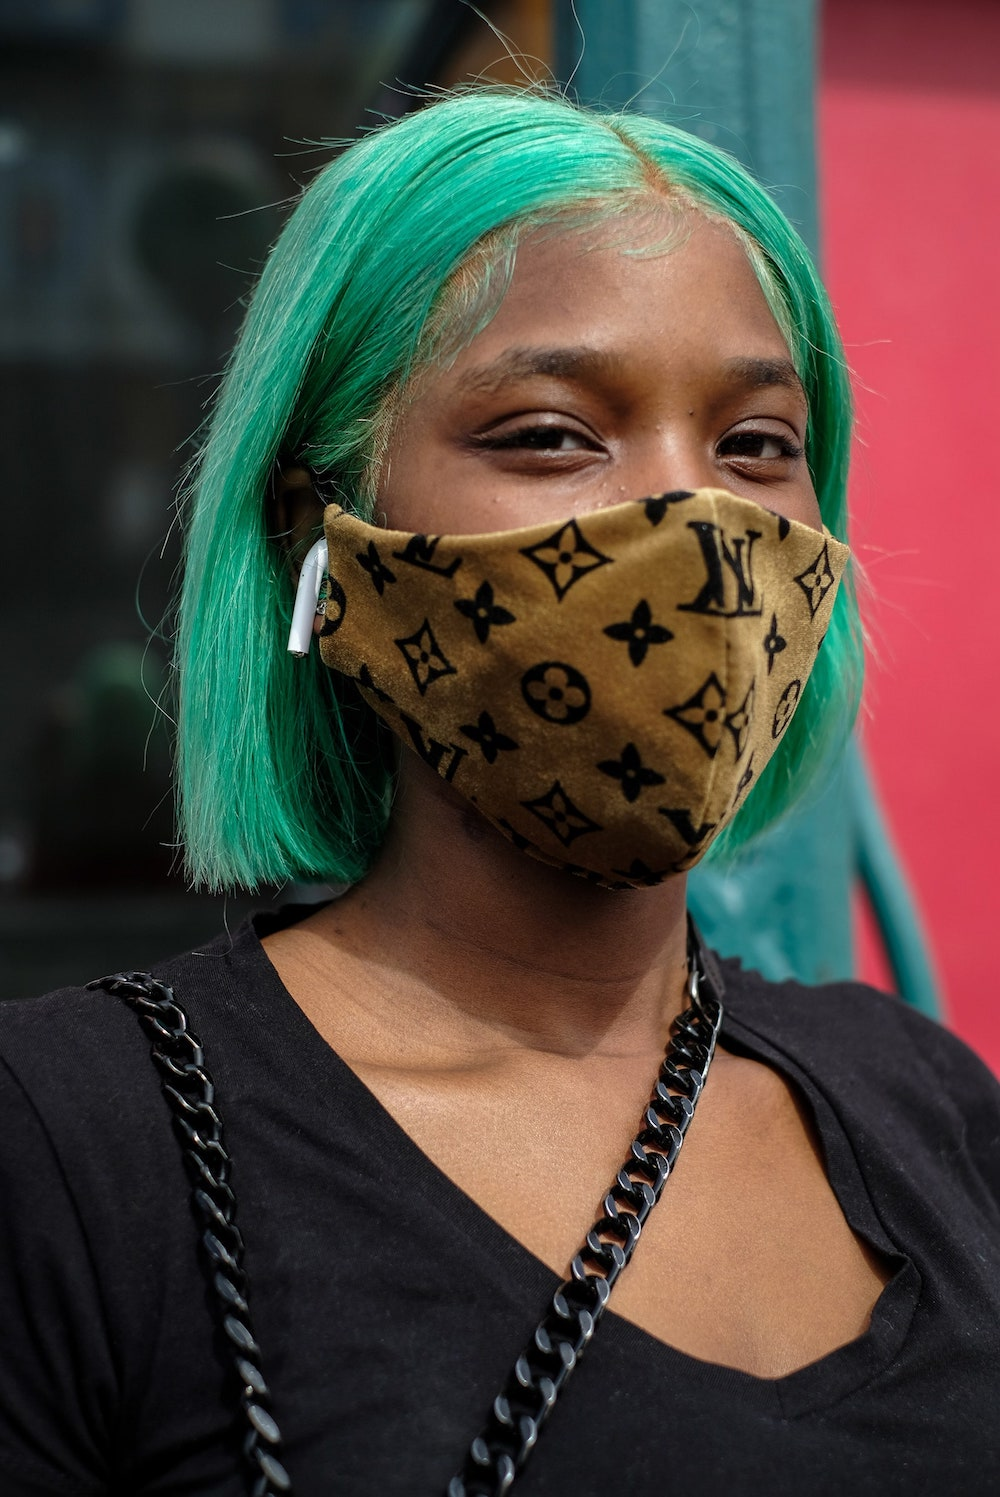 person with green hair and apple airpod wears golden Louis Vuitton printed mask